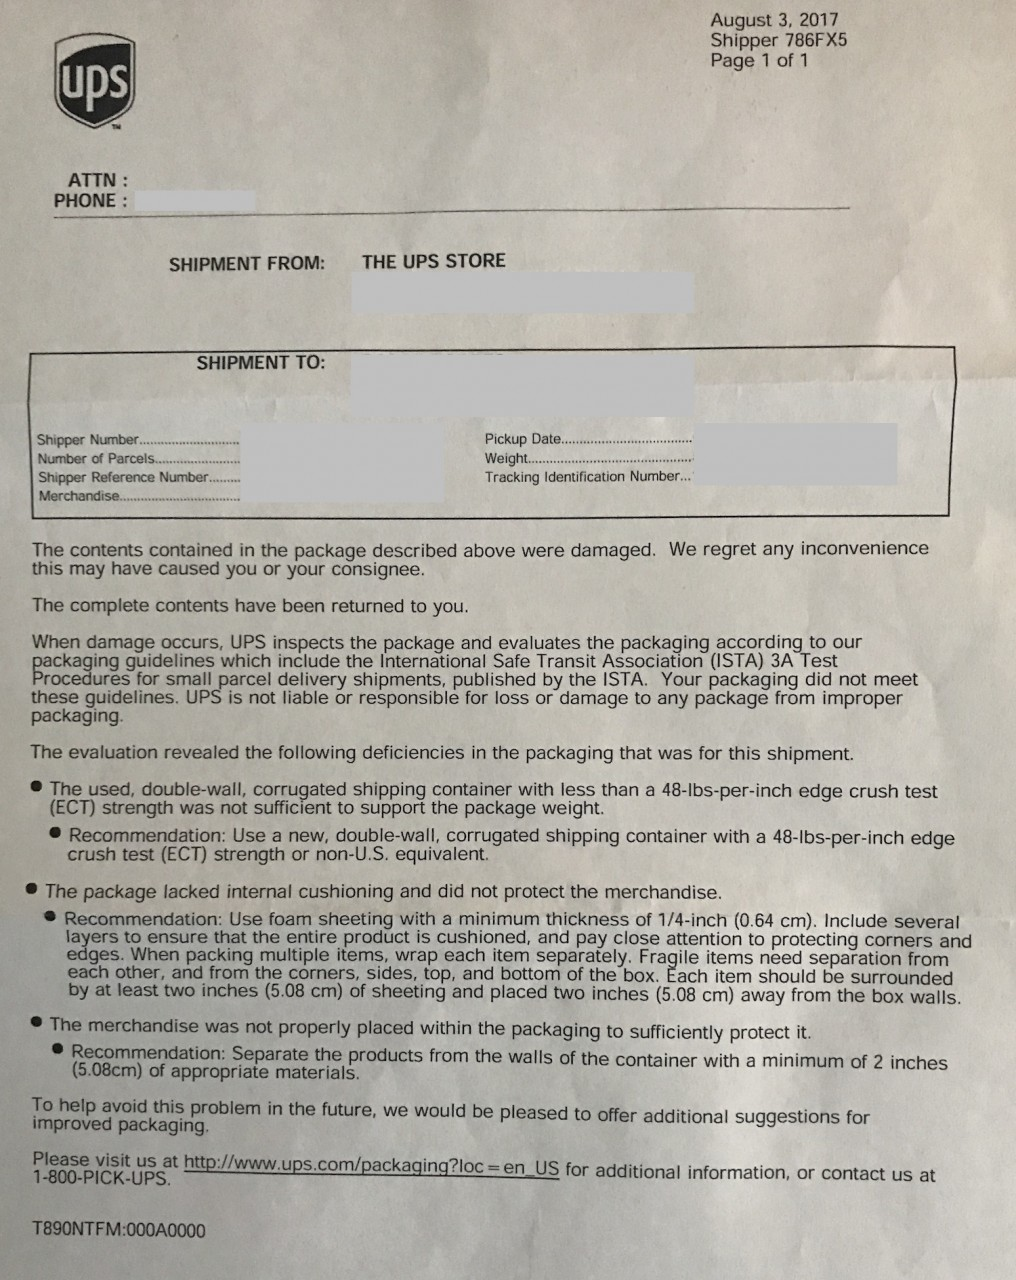 UPS claim form determination summary